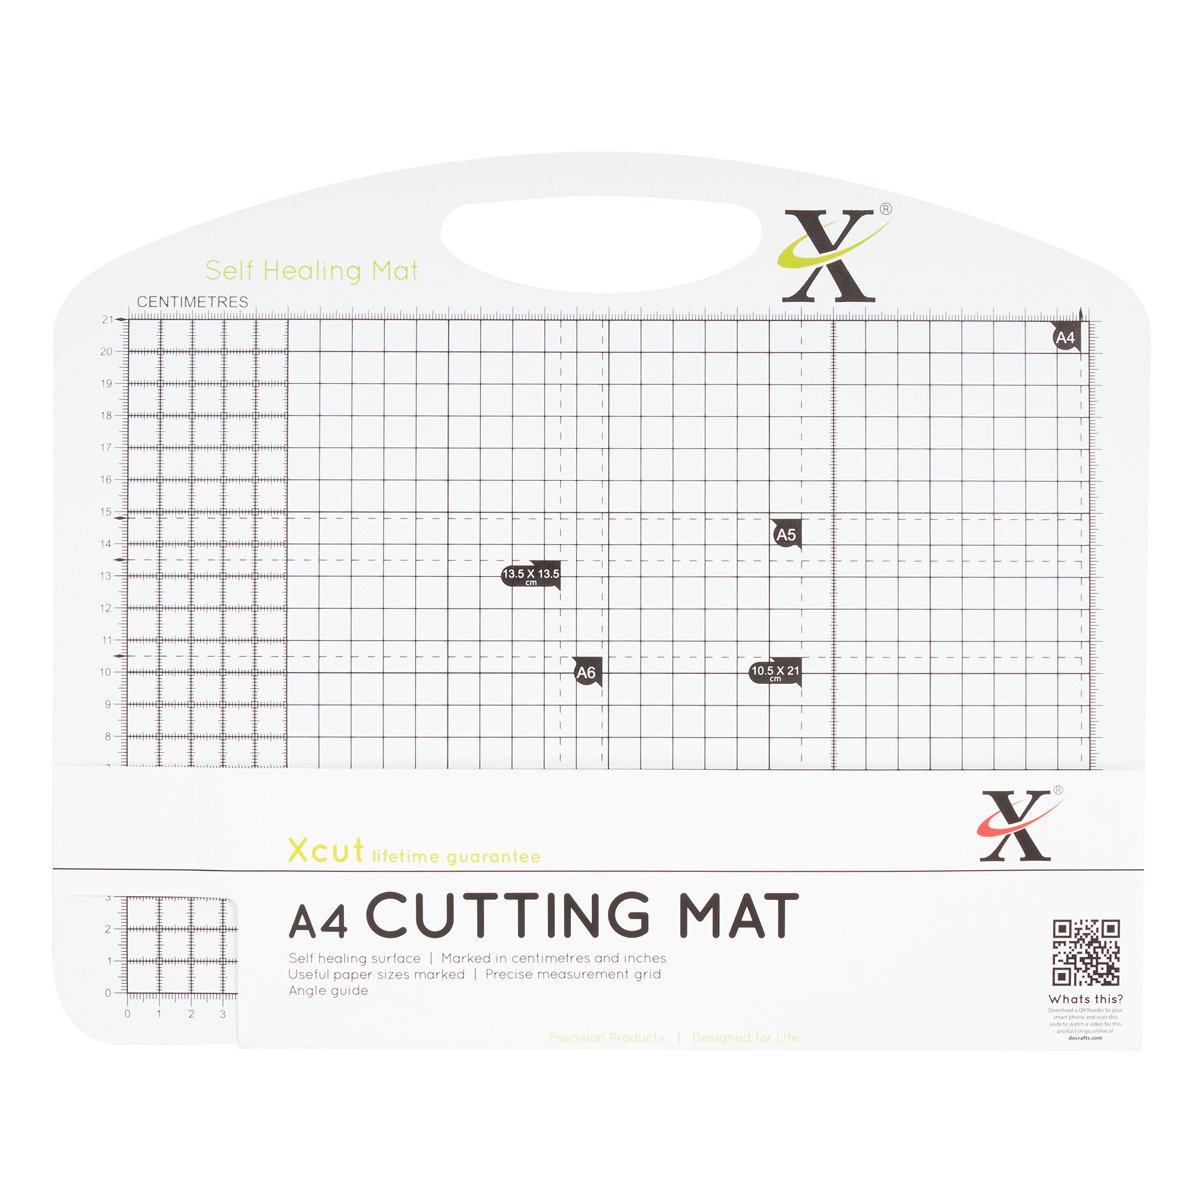 Xcut A4 Self Healing Duo Cutting Mat, Black/White Docrafts XC268431